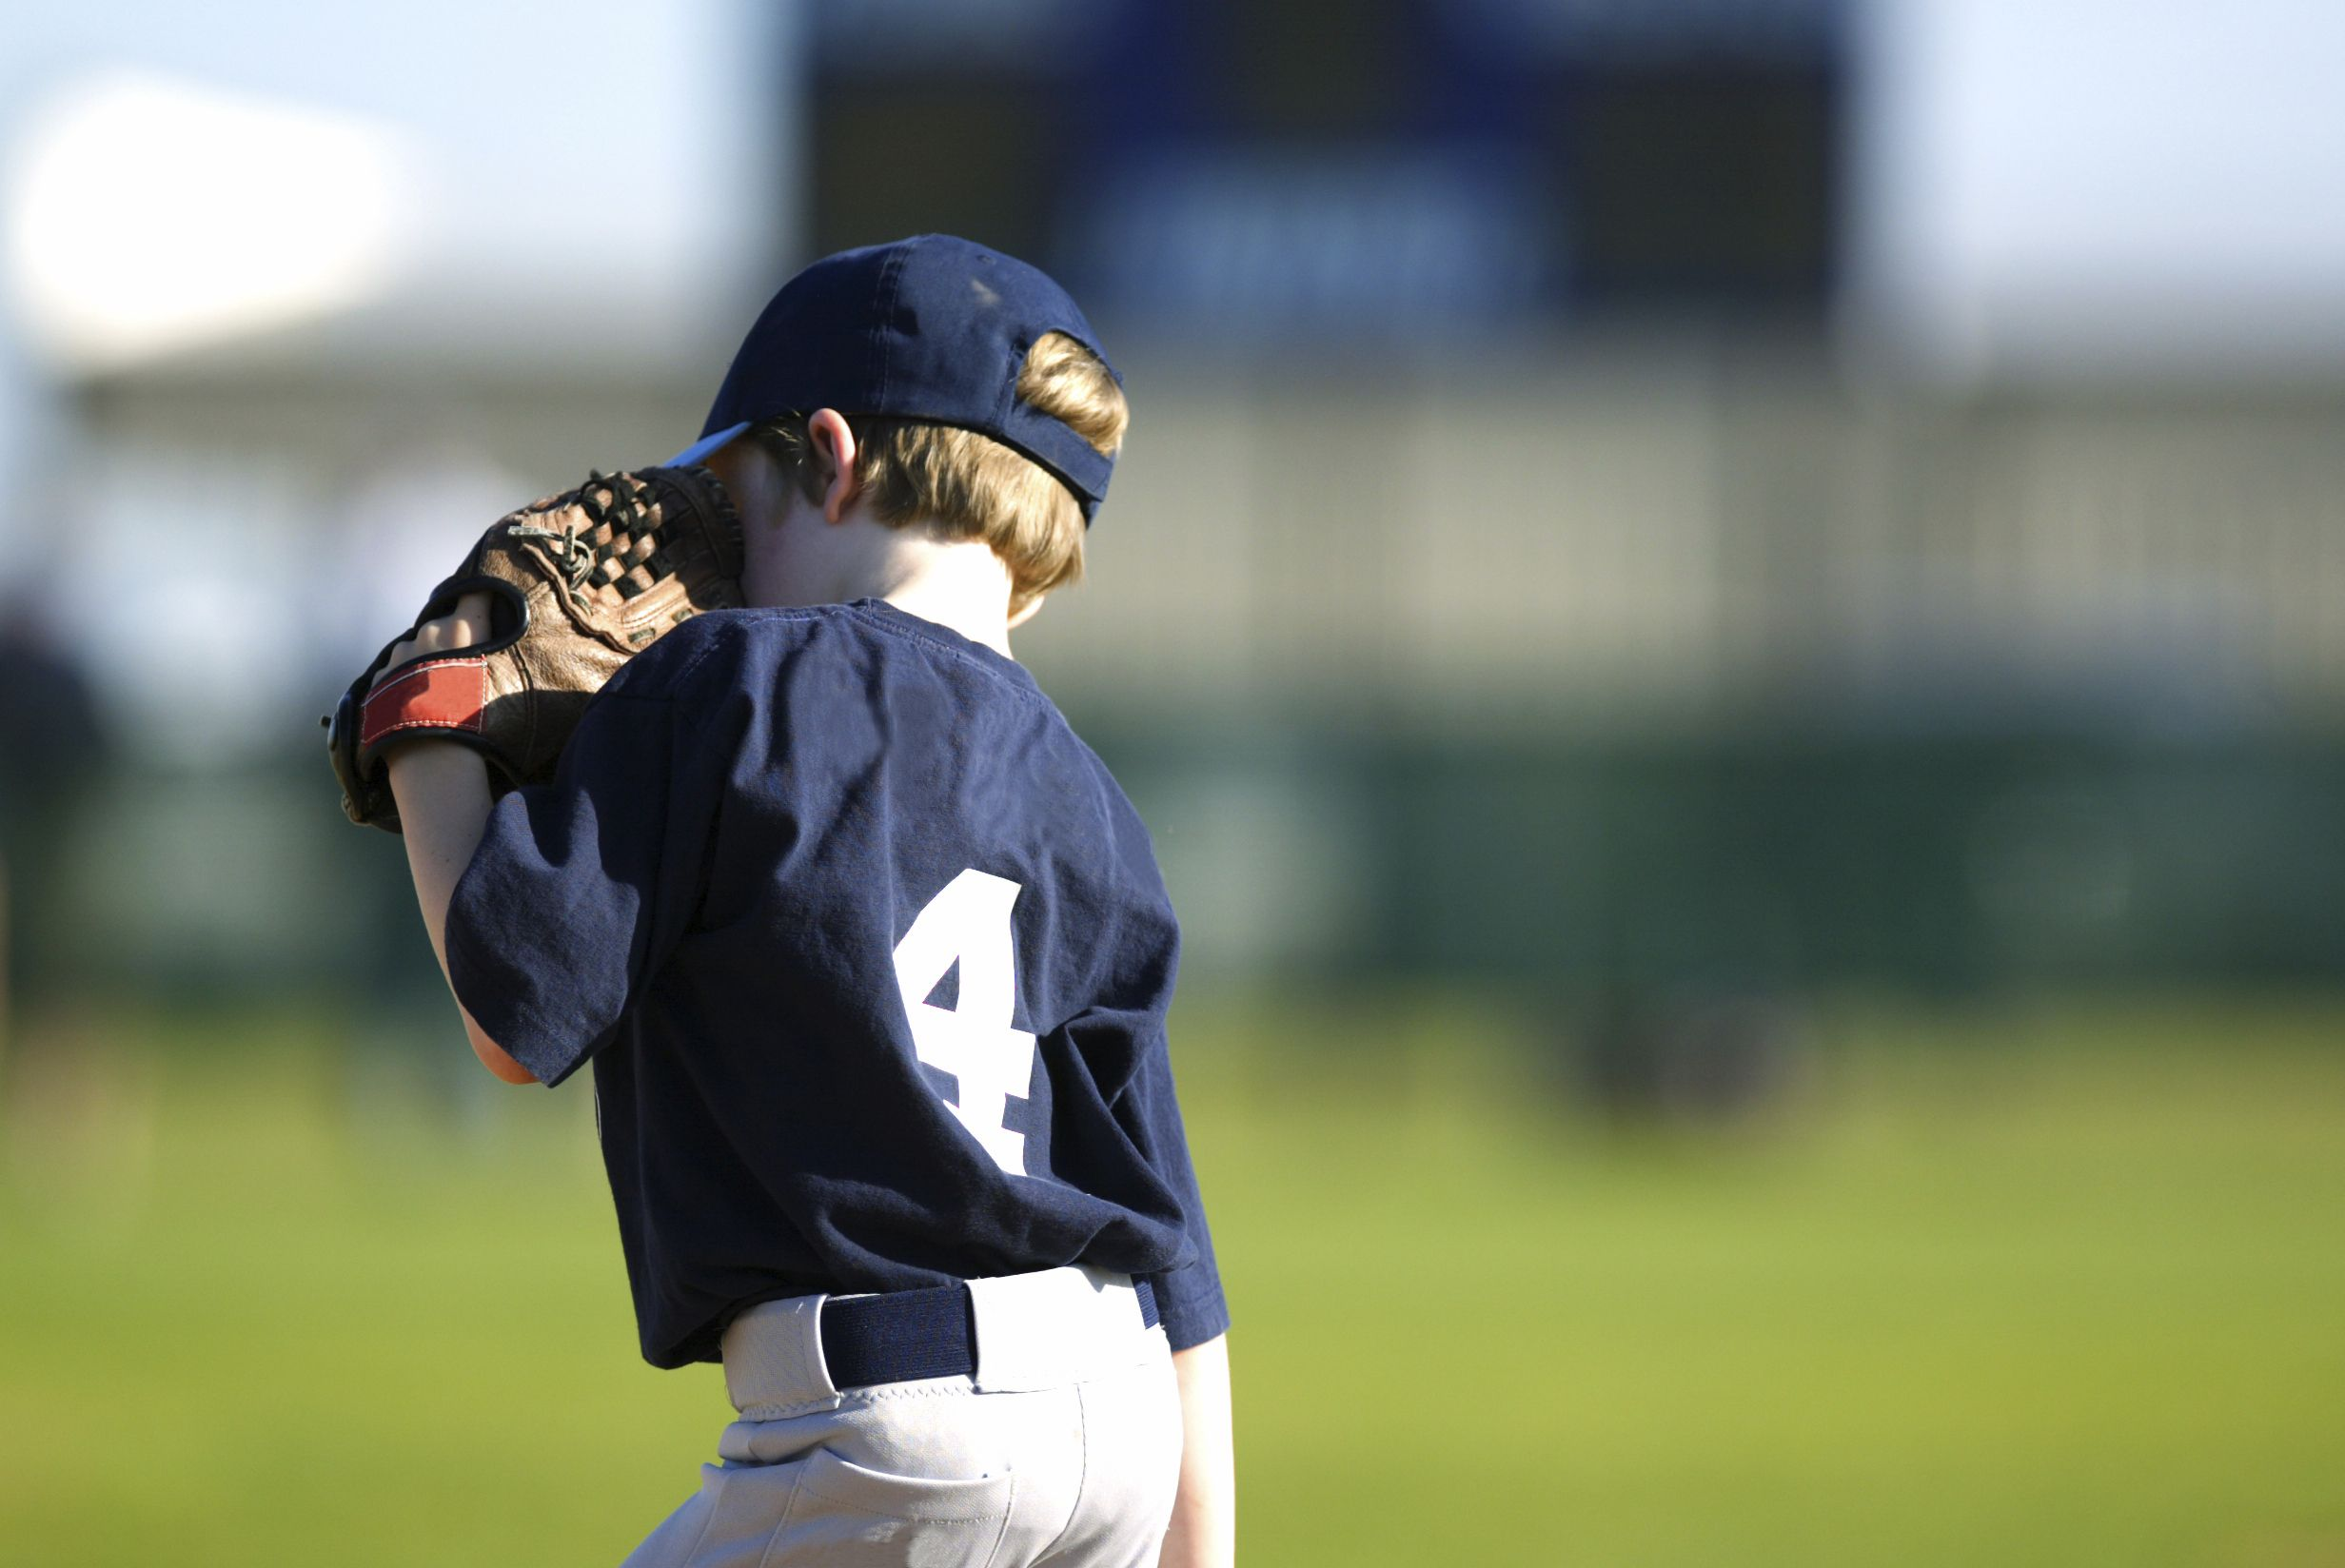 The Tipping Point In Youth Sports Changing The Game Project Kids Playing Sports Youth Sports Family Parenting